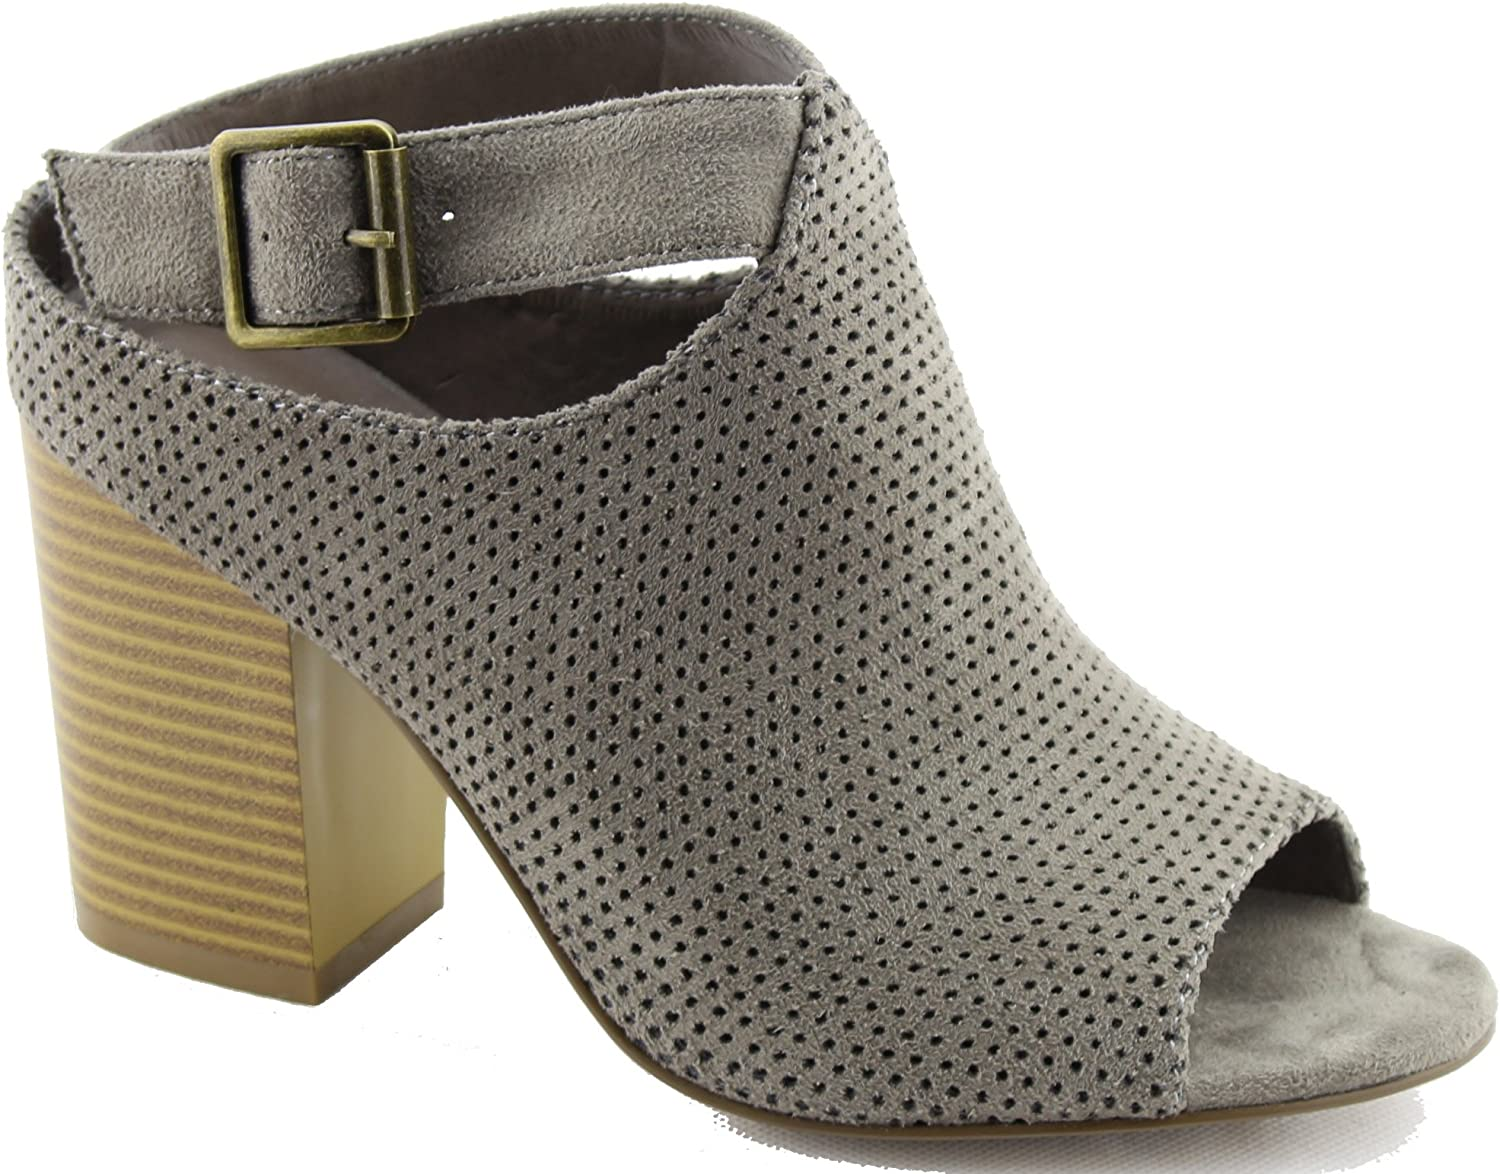 Women Leatherette Peep Toe Perforated Chunky Heel Bootie GG36 Stone Suede